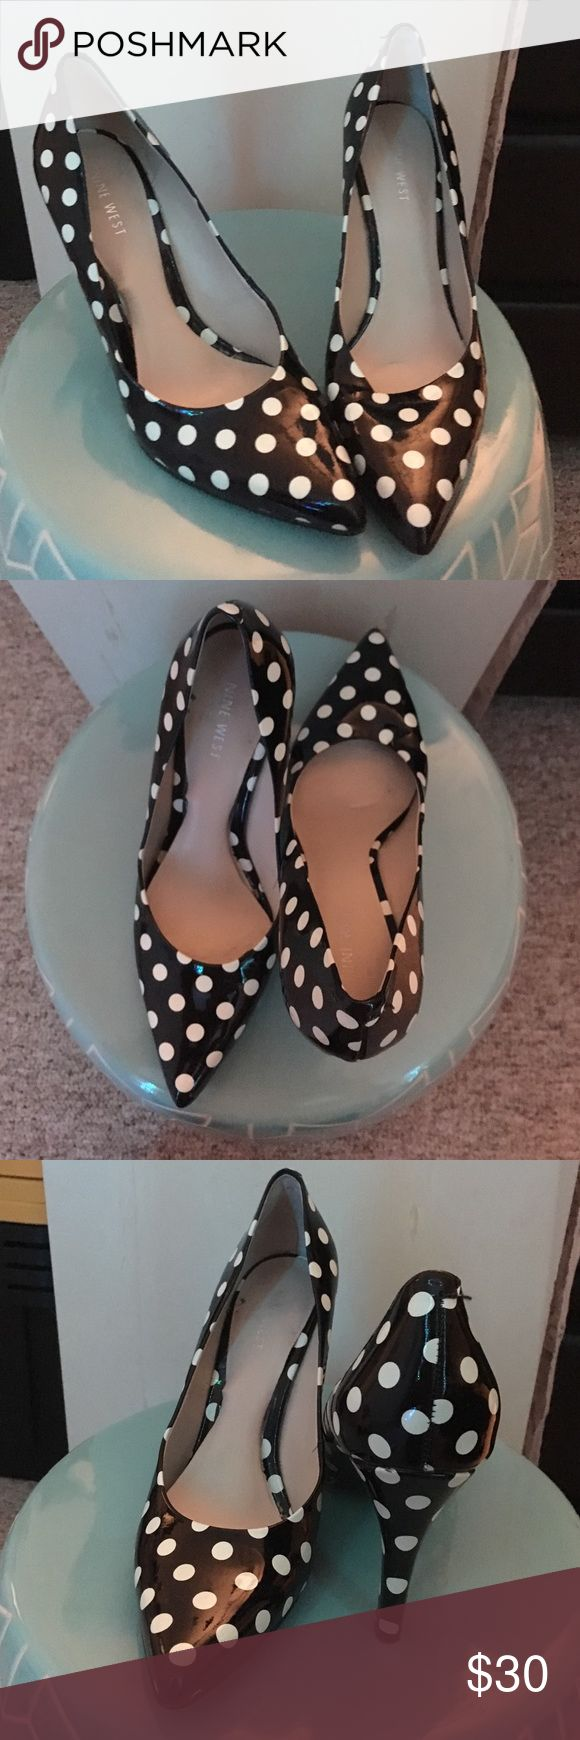 Polka dot Nine West pumps Re-posh. Worn once by me. Very cute and comfortable. Nine West Shoes Heels